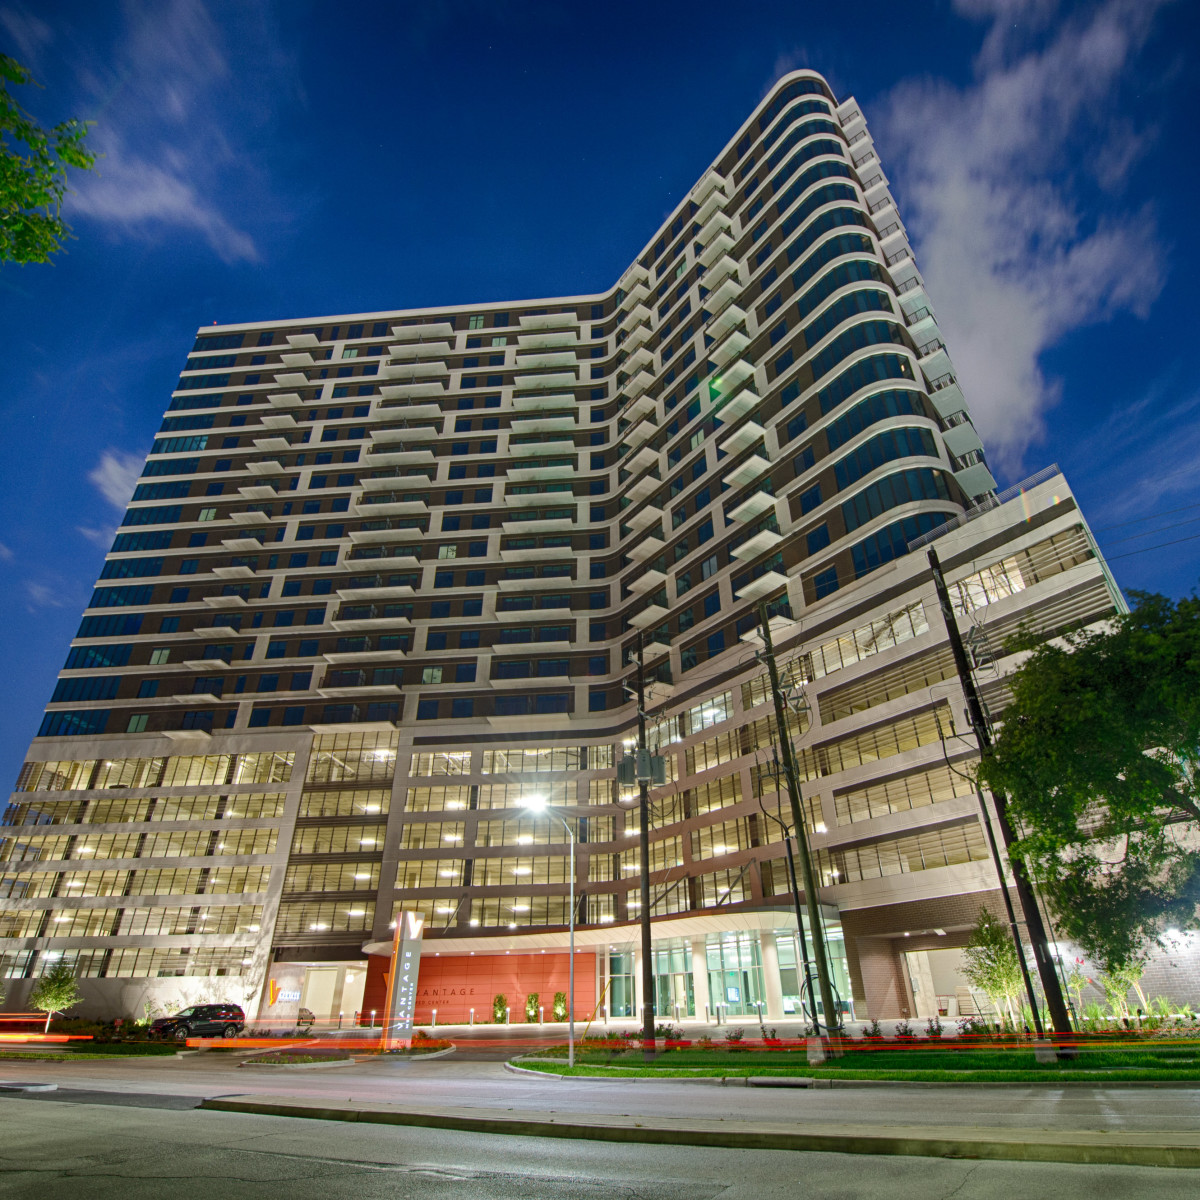 Houston Vantage Med Center apartments